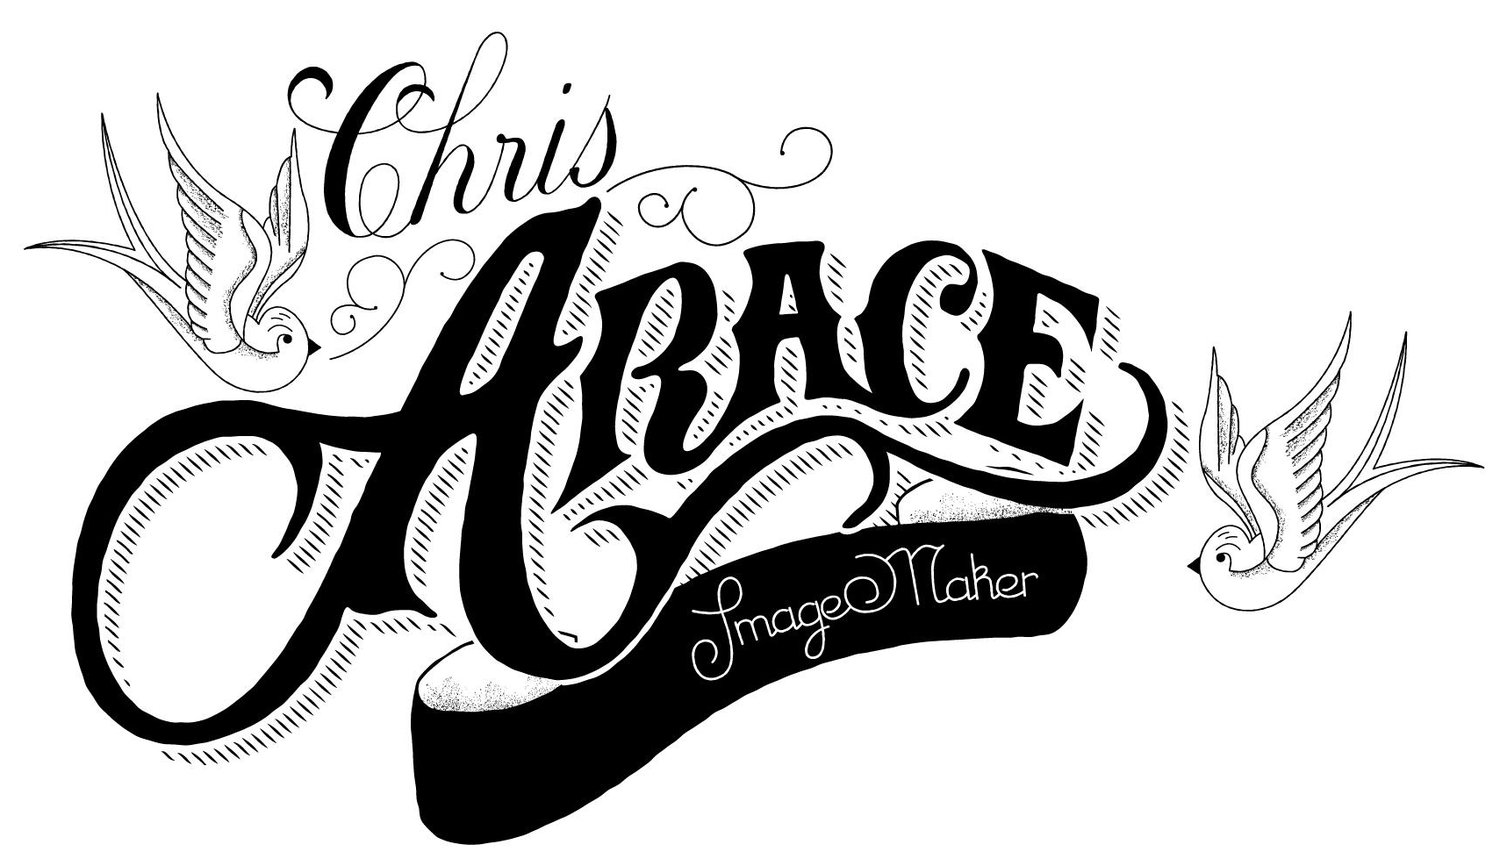 Chris Arace | ImageMaker